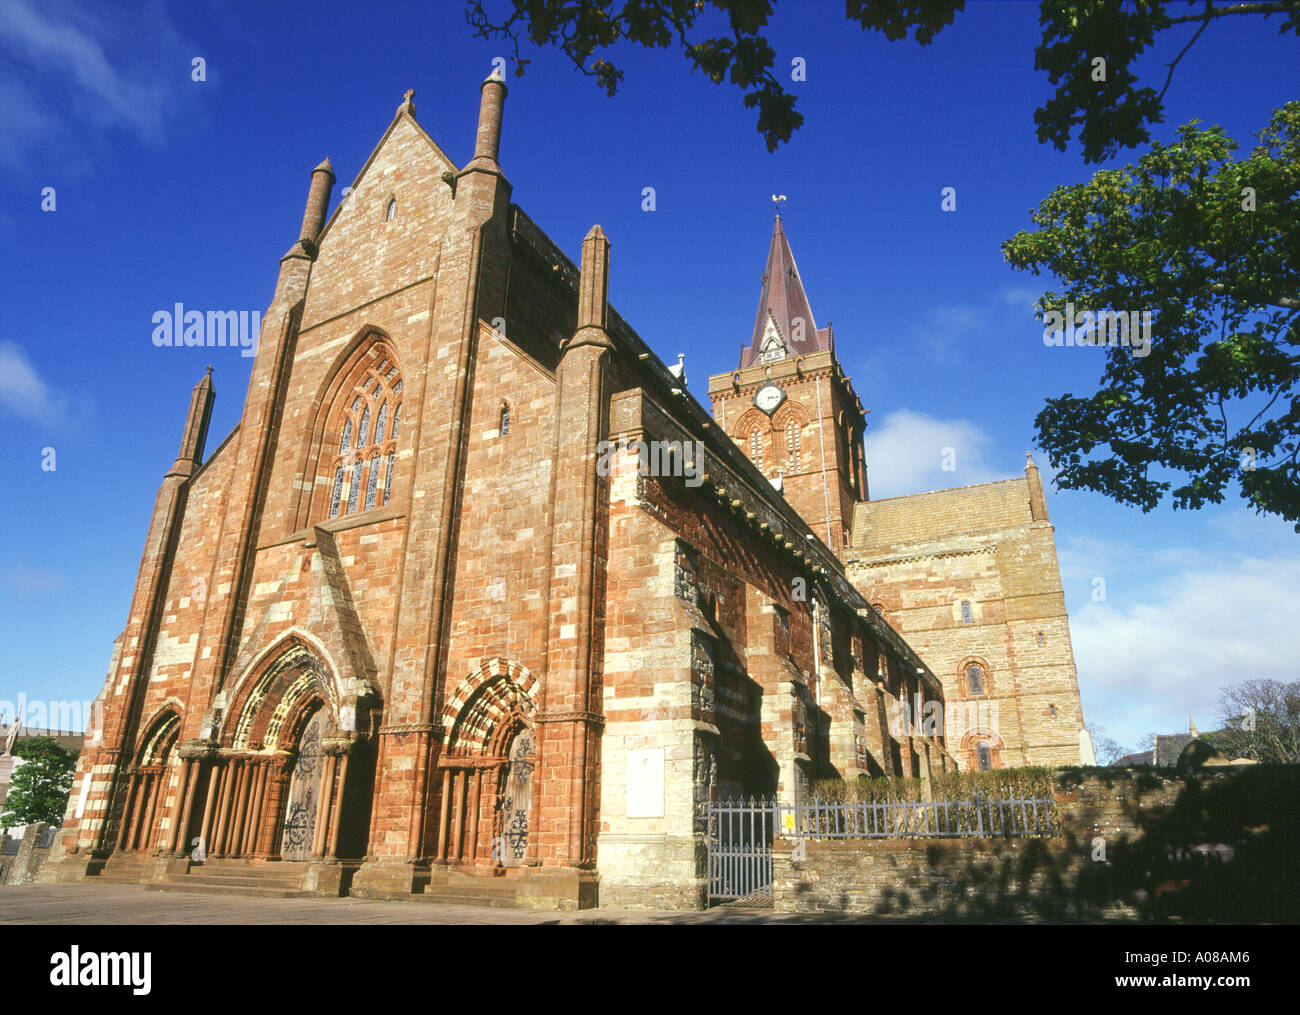 dh St Magnus Cathedral KIRKWALL ORKNEY Norse Viking cathedral exterior uk orkneys Stock Photo